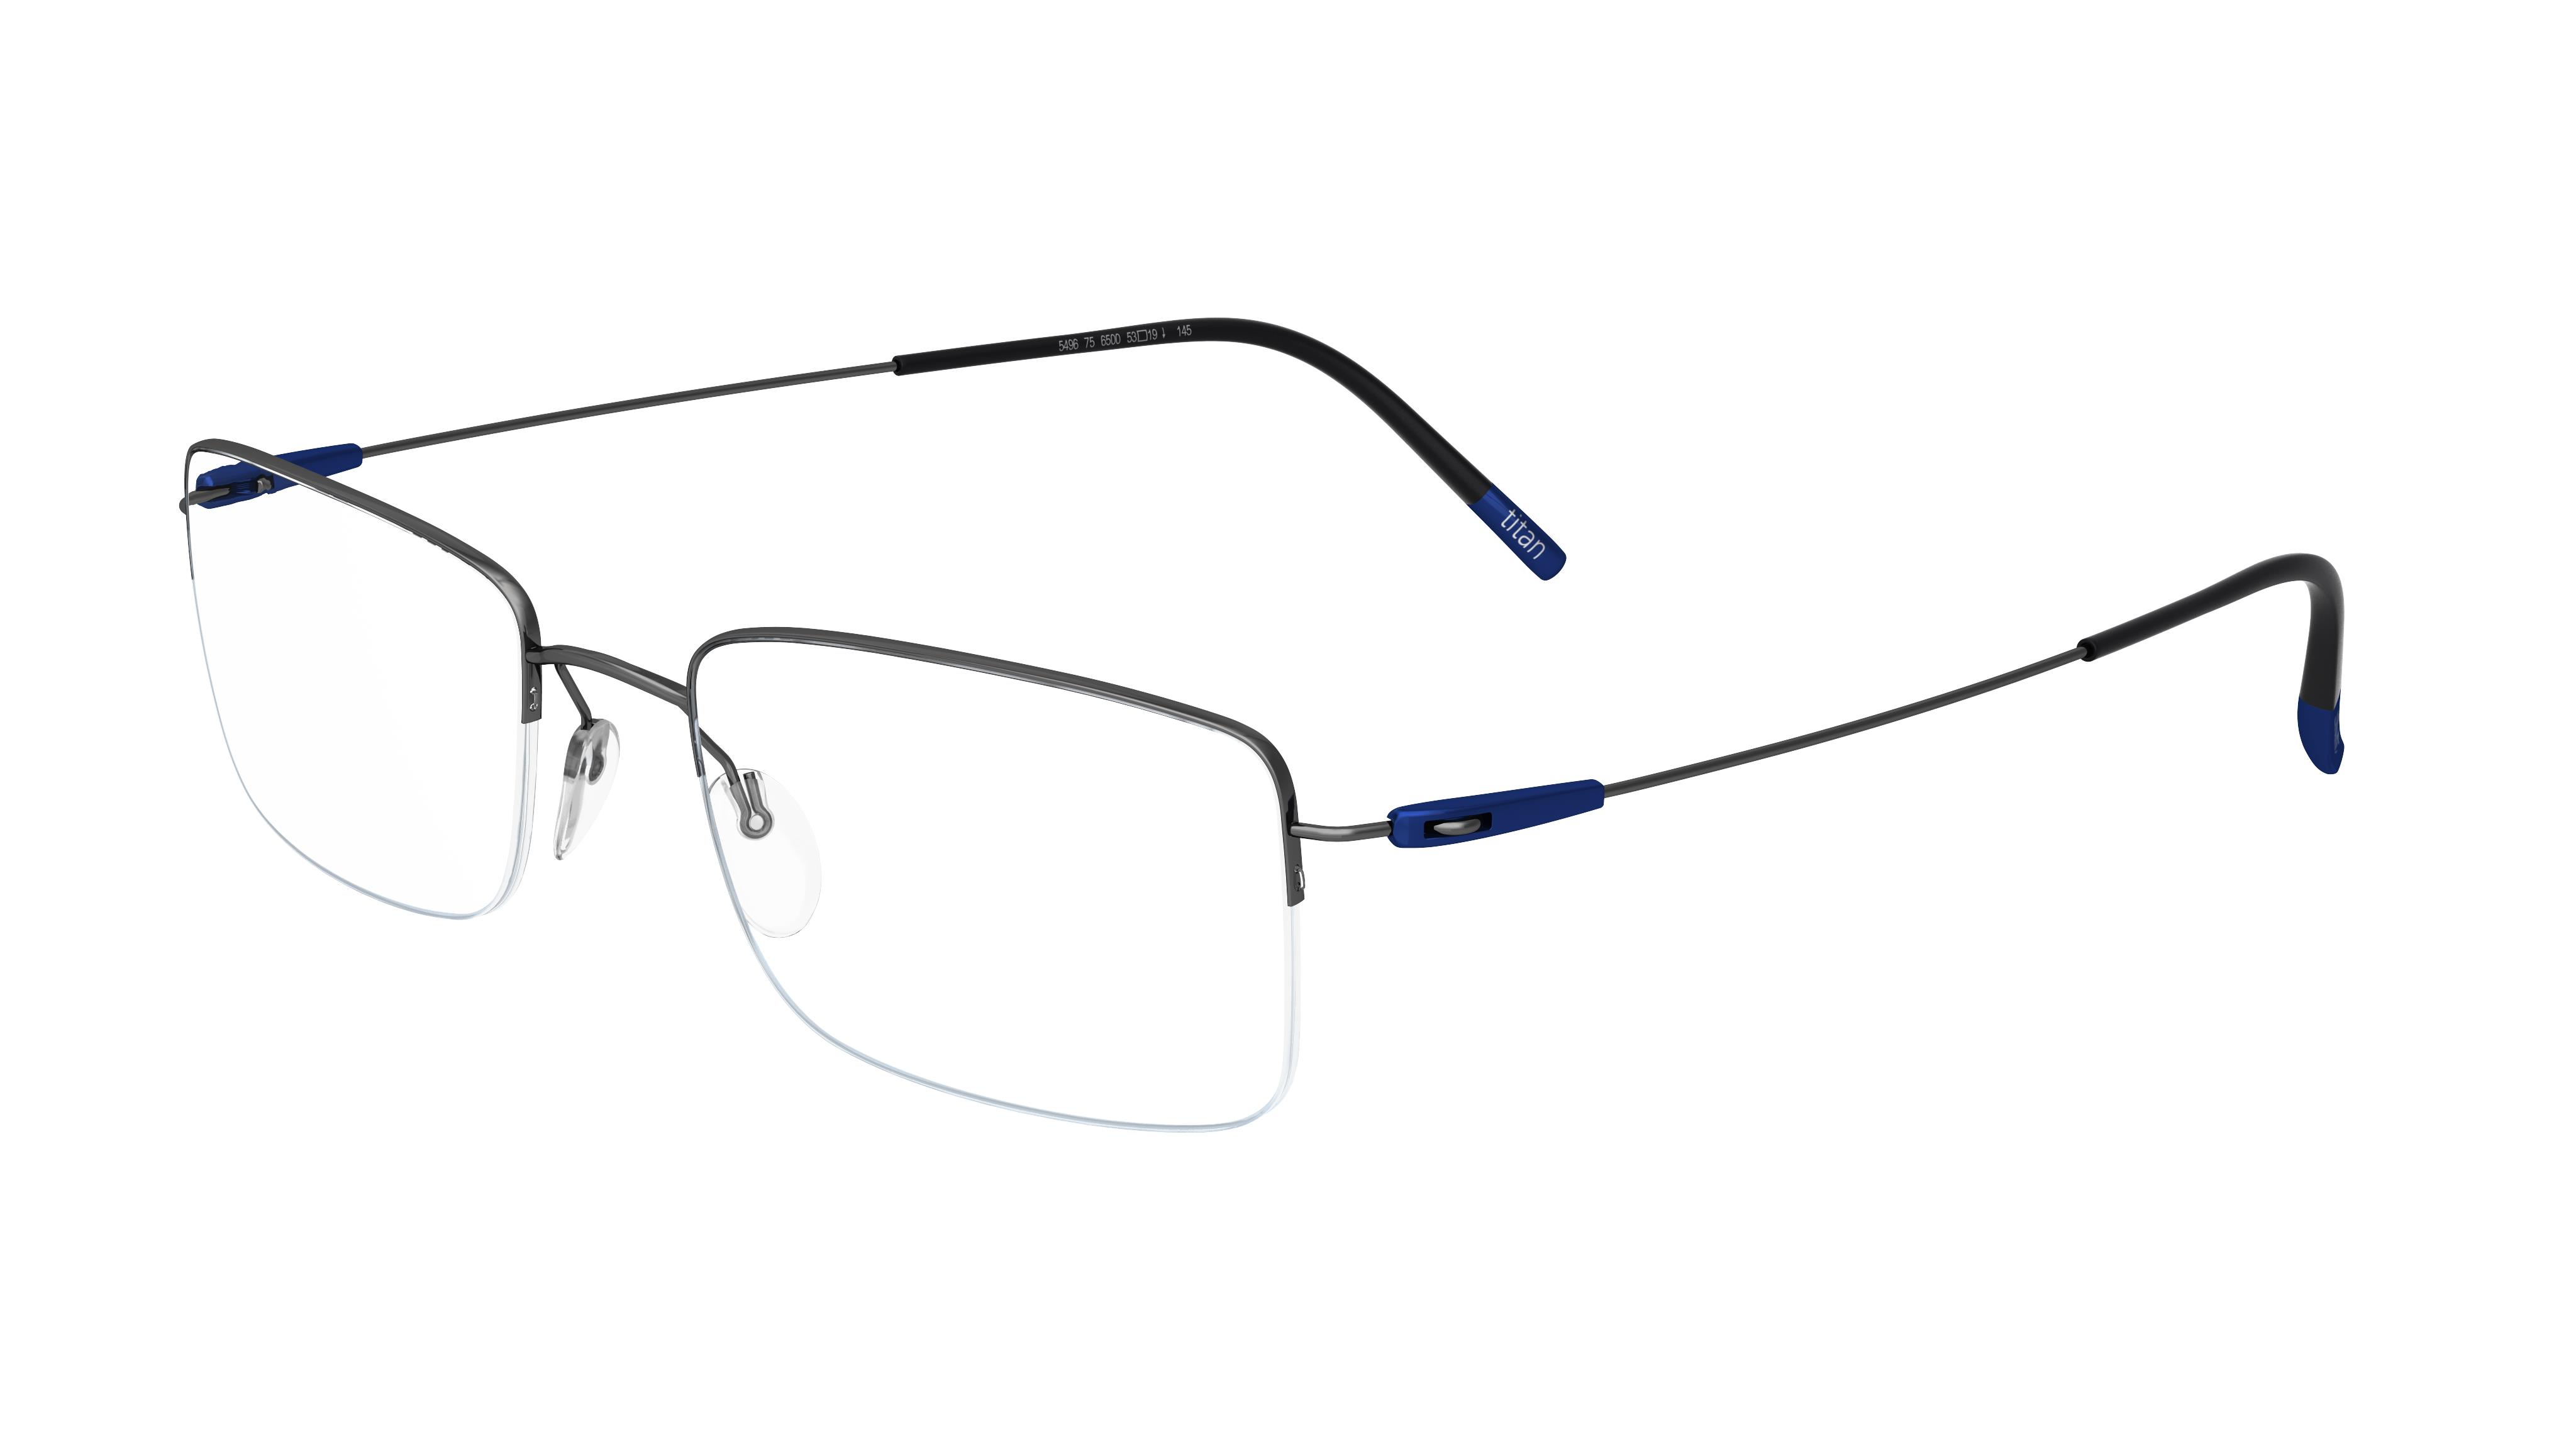 68d1dbe43ab SILHOUETTE Dynamics Colorwave Nylor (5496) Eyewear is available to ...